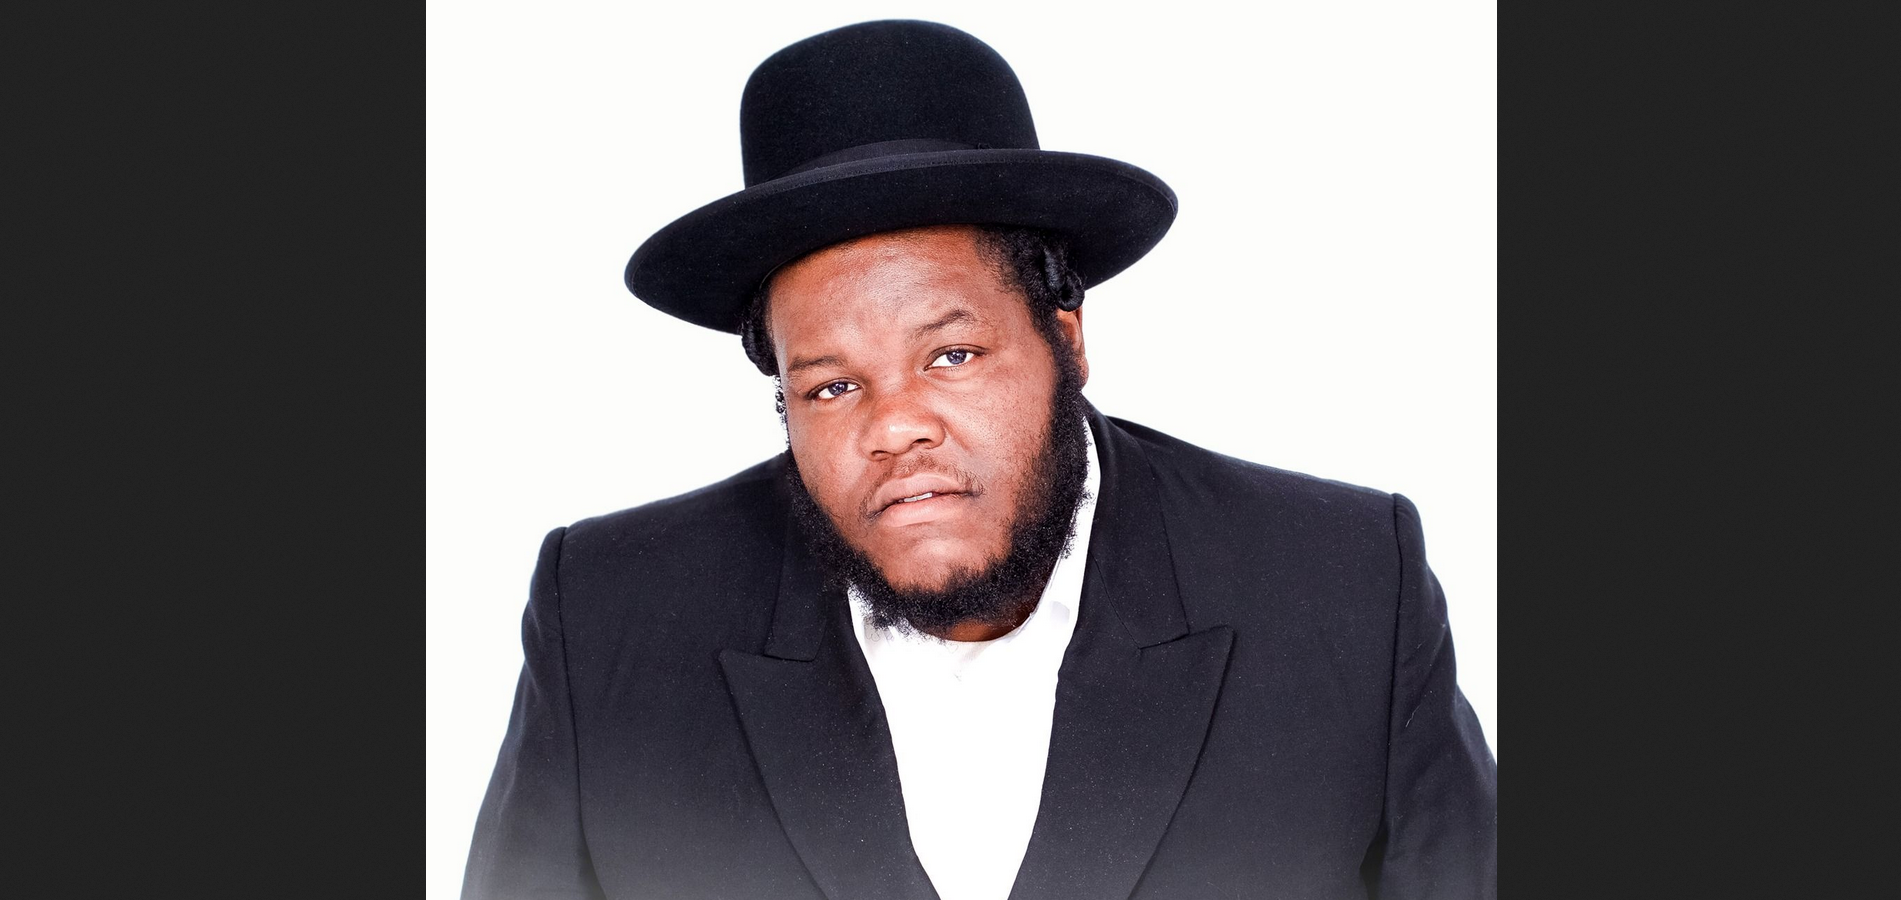 The Stereotype-Defying Hasidic Rapper & Other Orthodox Jews in the News